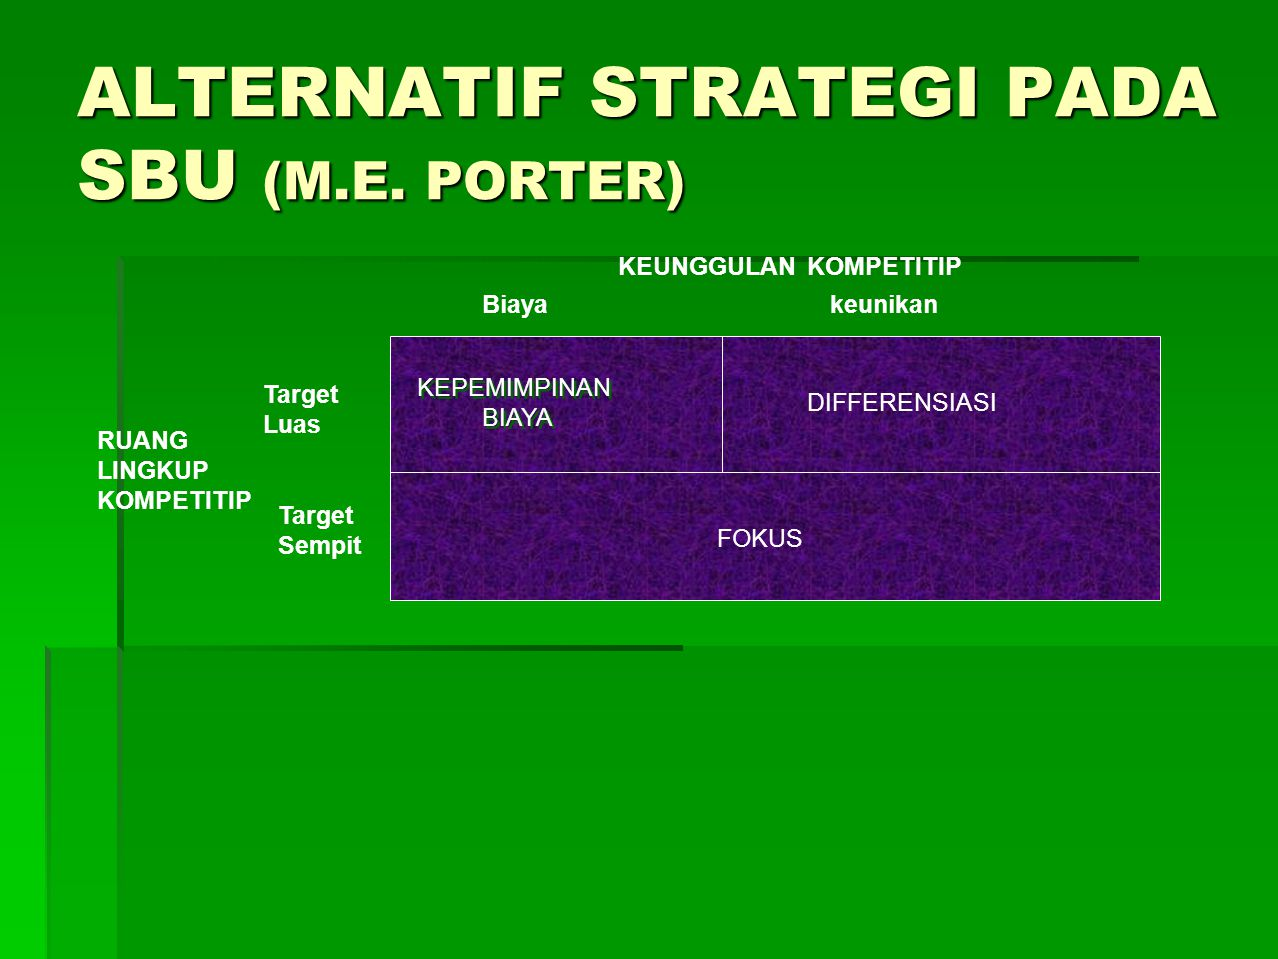 ALTERNATIF STRATEGI PADA SBU (M.E. PORTER)